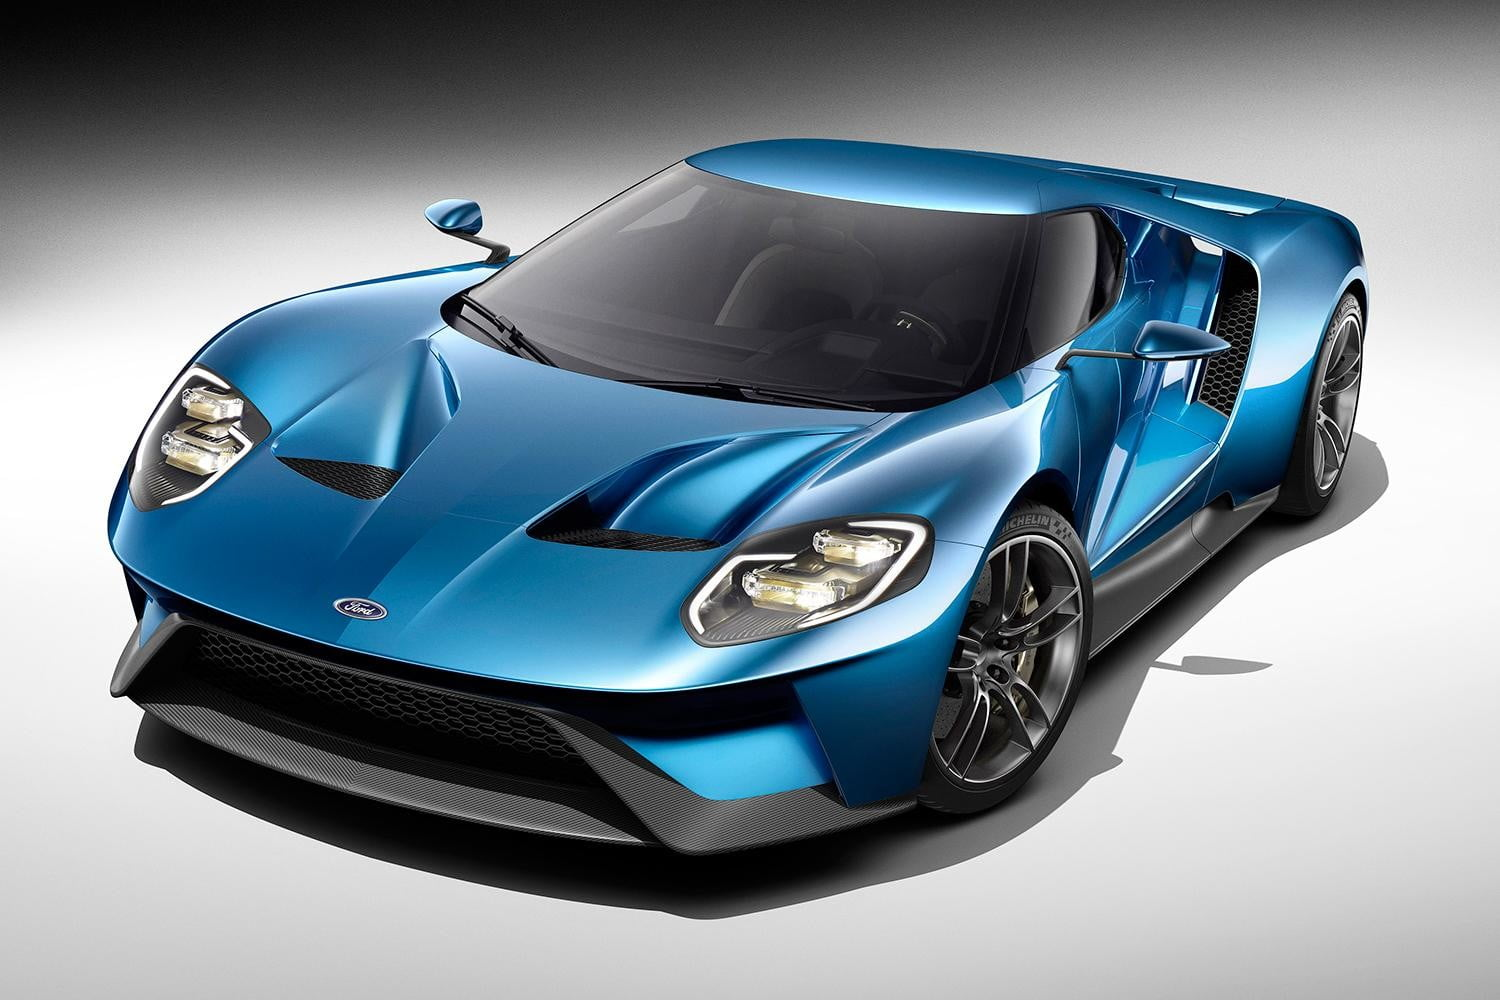 Ford Gt Supercar Official Specs Pictures Performance Digital Trends